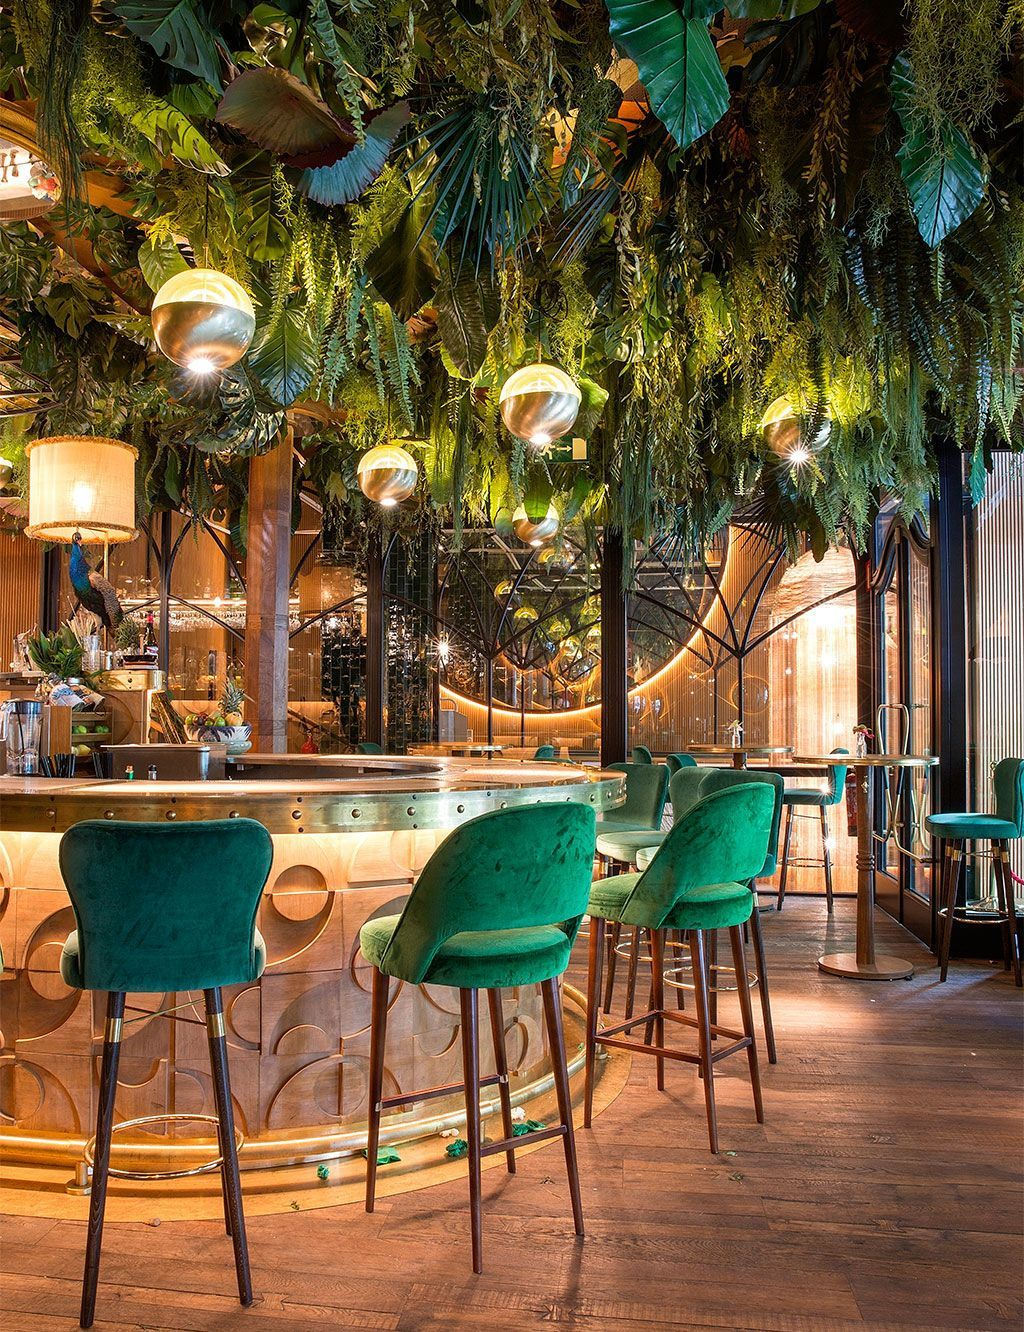 Royal Green Velvet | Amazónico Bar | Counter & Bar Stools | Bar Chairs. Bar Stools. #barchair #stools #counterstool Find more inspiration at: https://www.brabbu.com/en/inspiration-and-ideas/world-travel/sophisticated-upholstered-bar-stools-want